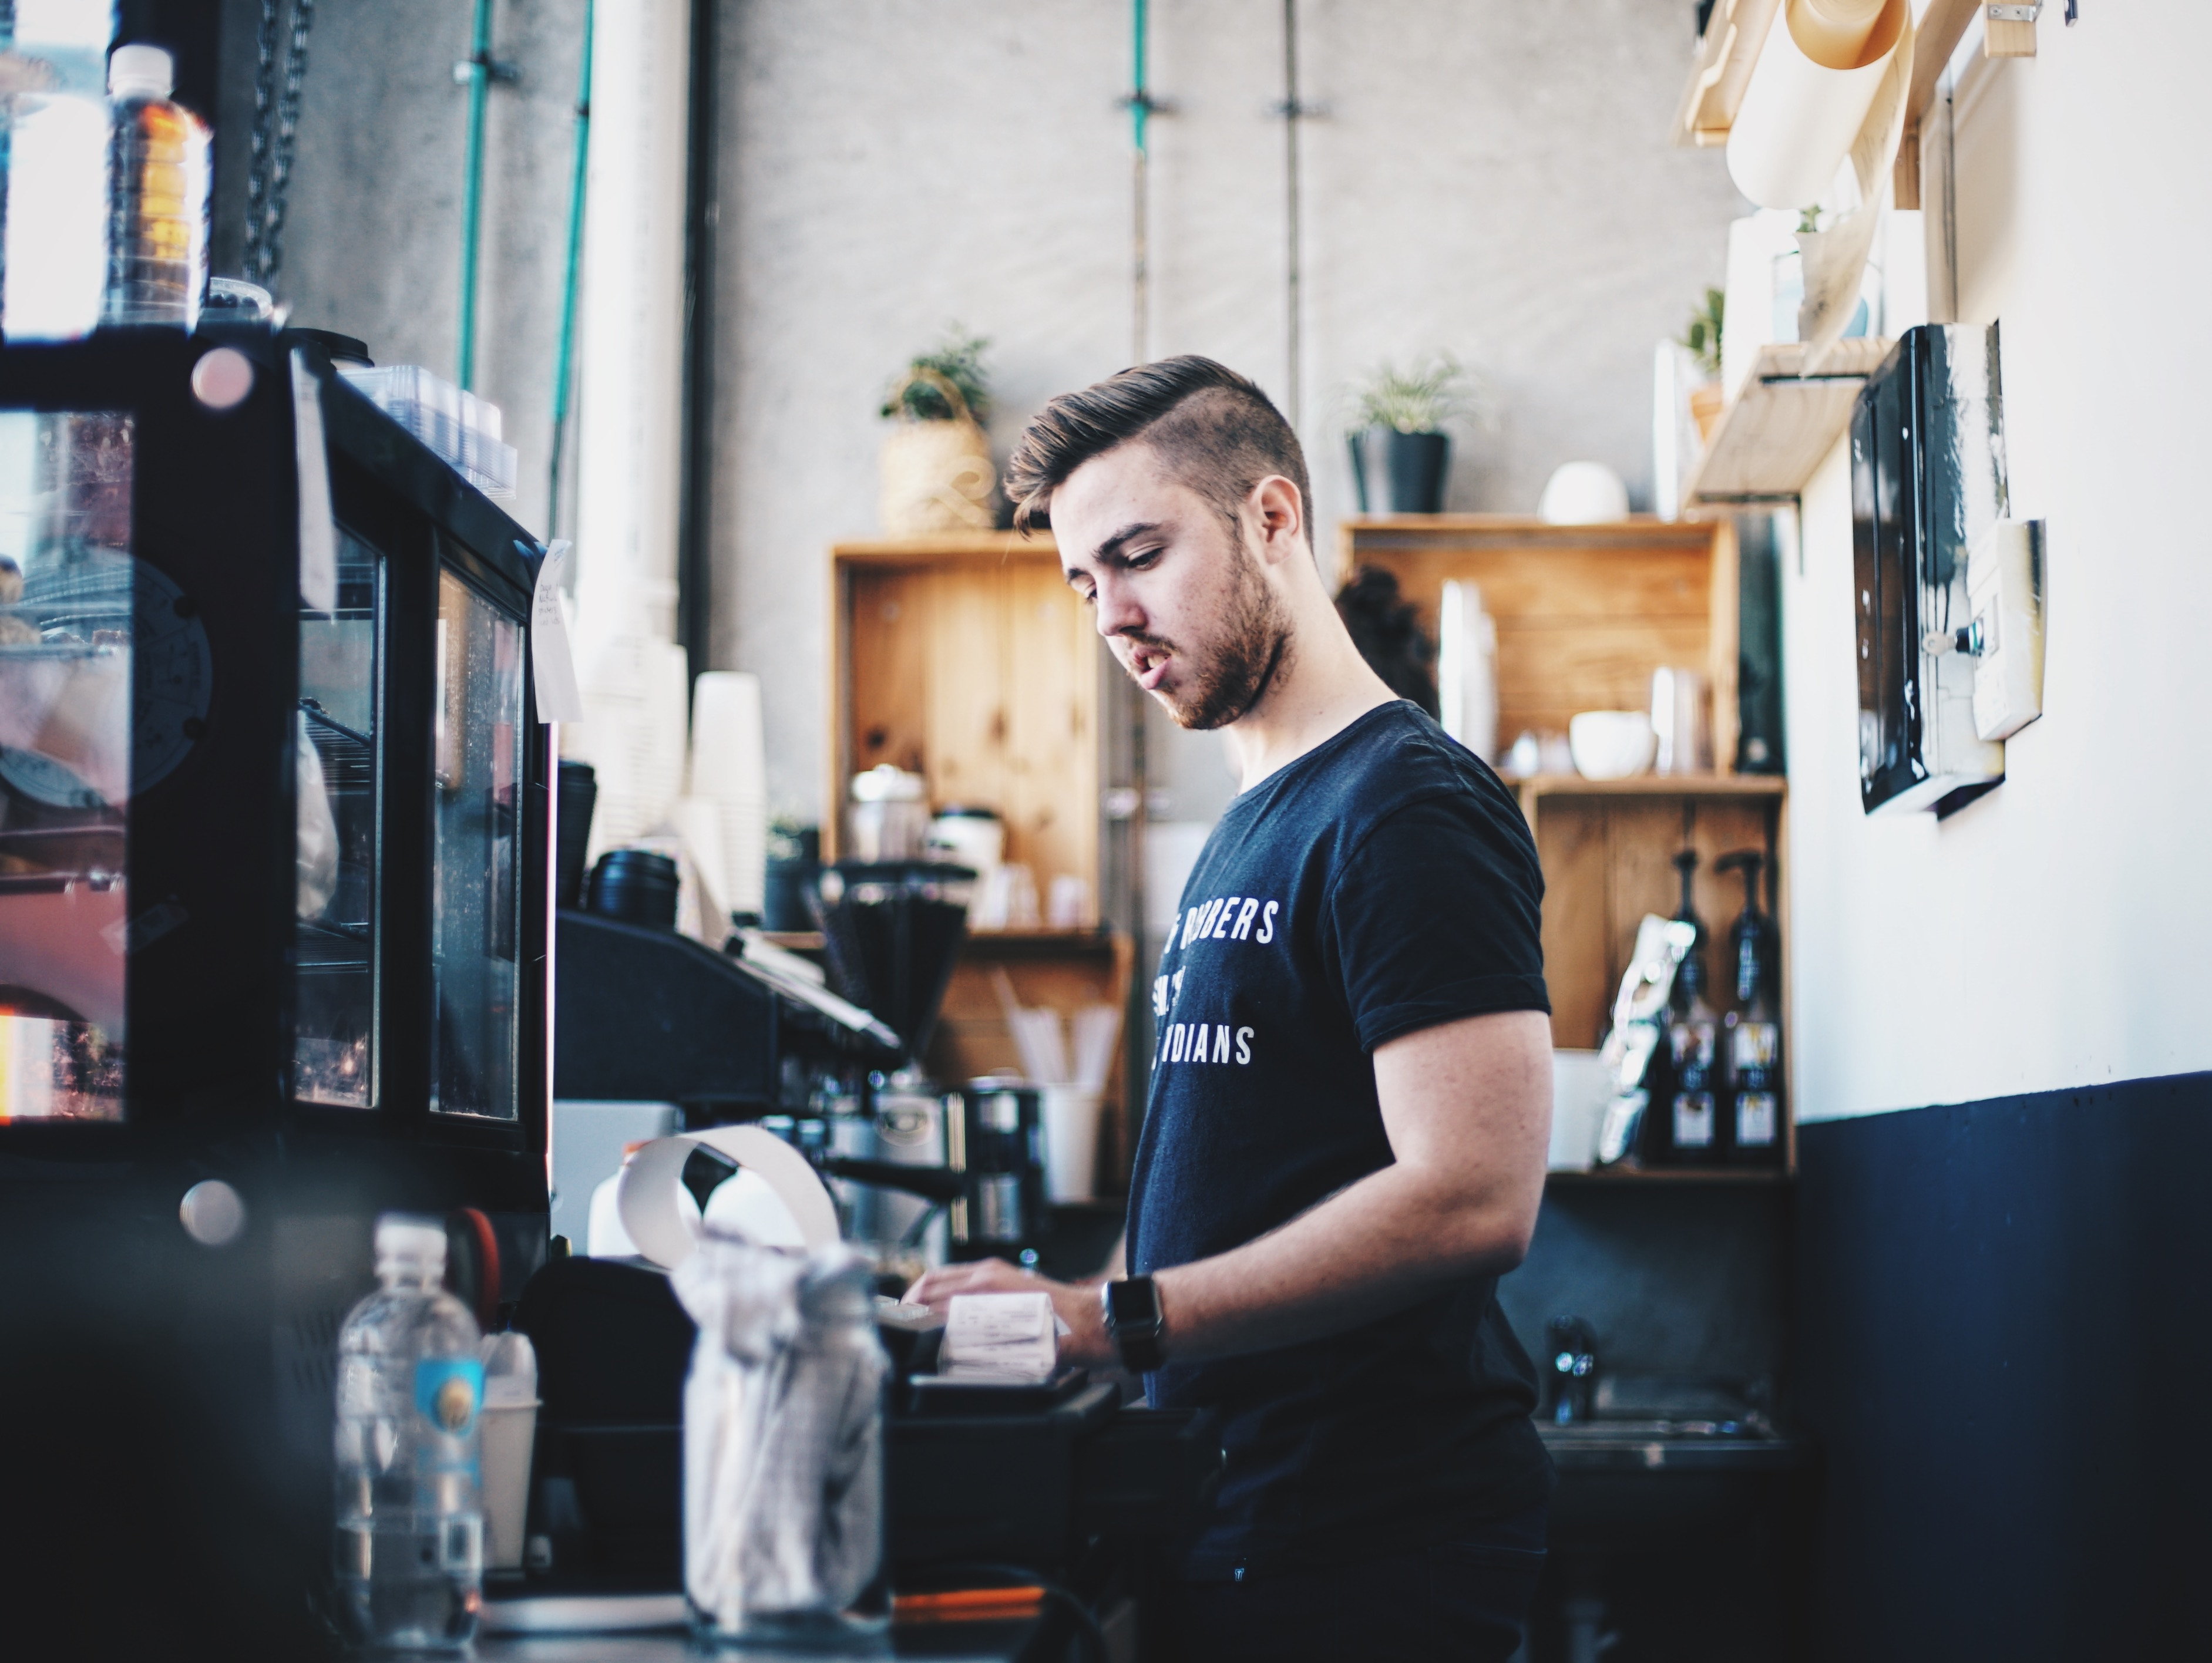 A barista in a black shirt and plants stands at the bar in a cafe.